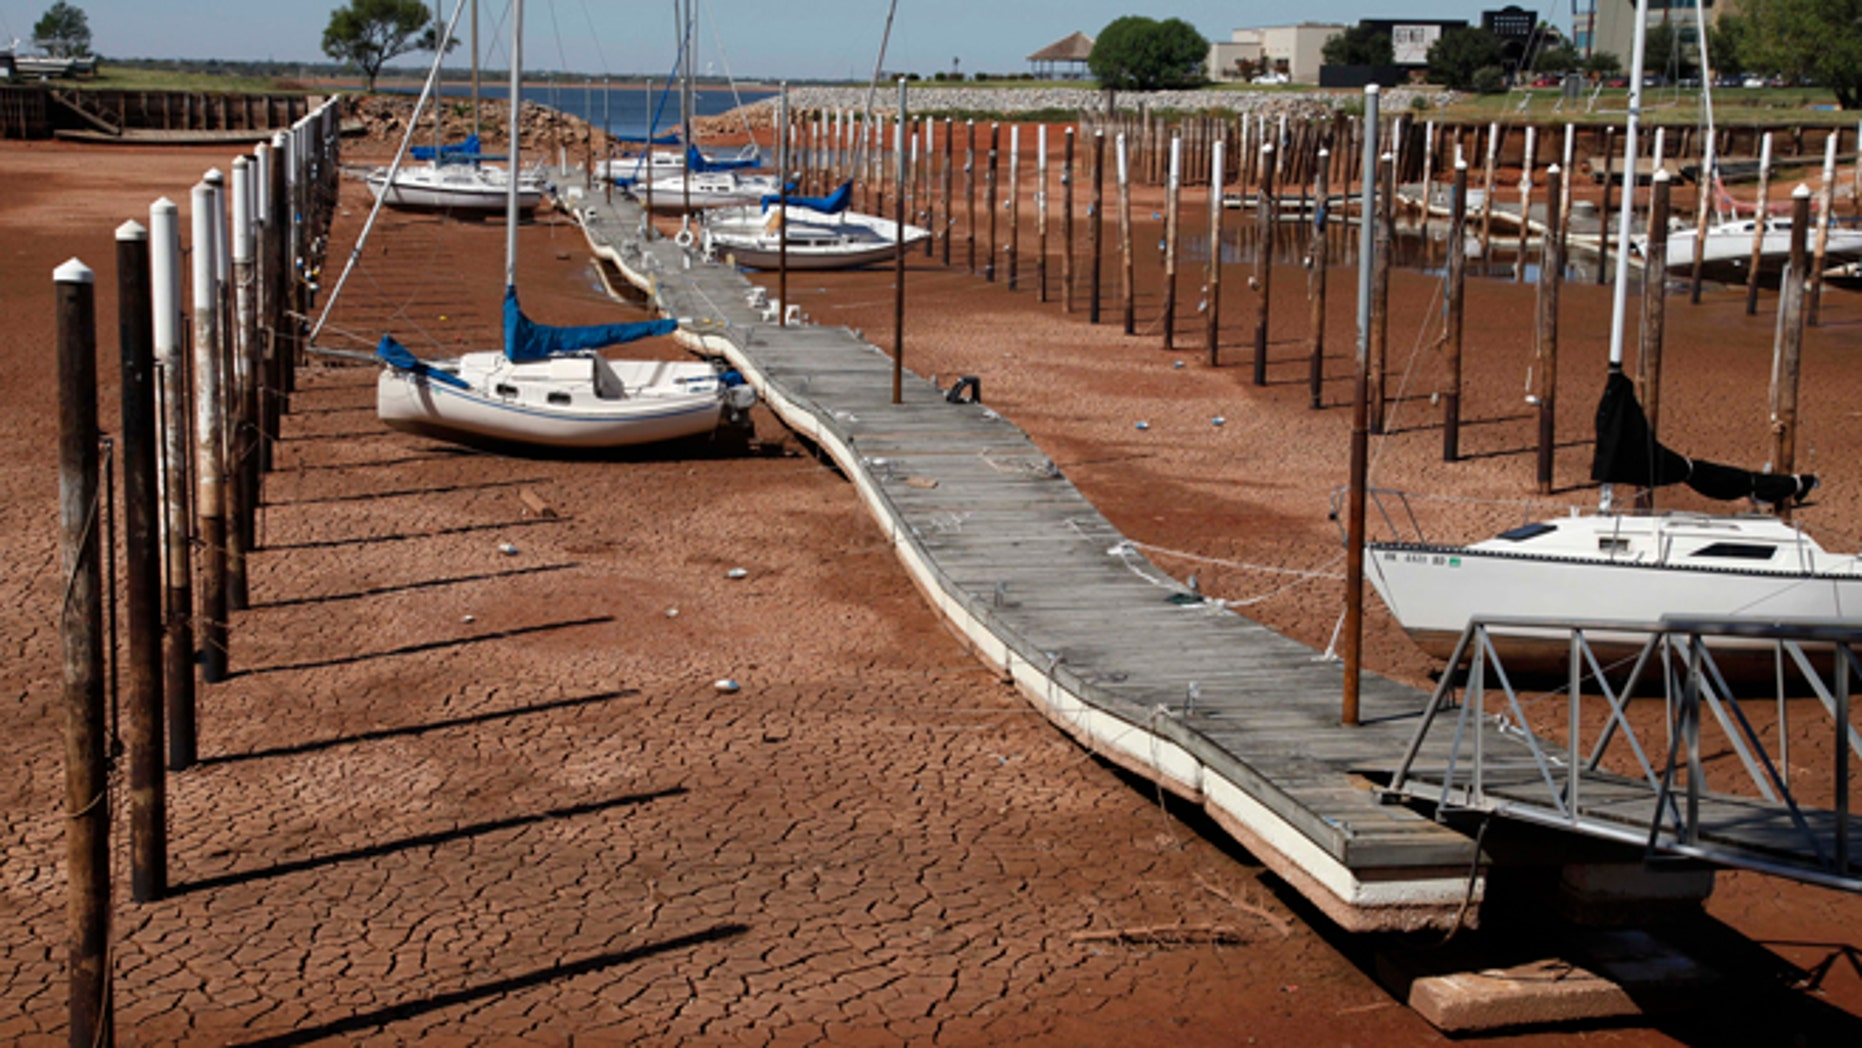 Sept. 30, 2011: In this file photo, Sailboats and a floating dock lie on the dry, cracked dirt in a harbor at Lake Hefner in Oklahoma City as drought continues to be a problem across the state.